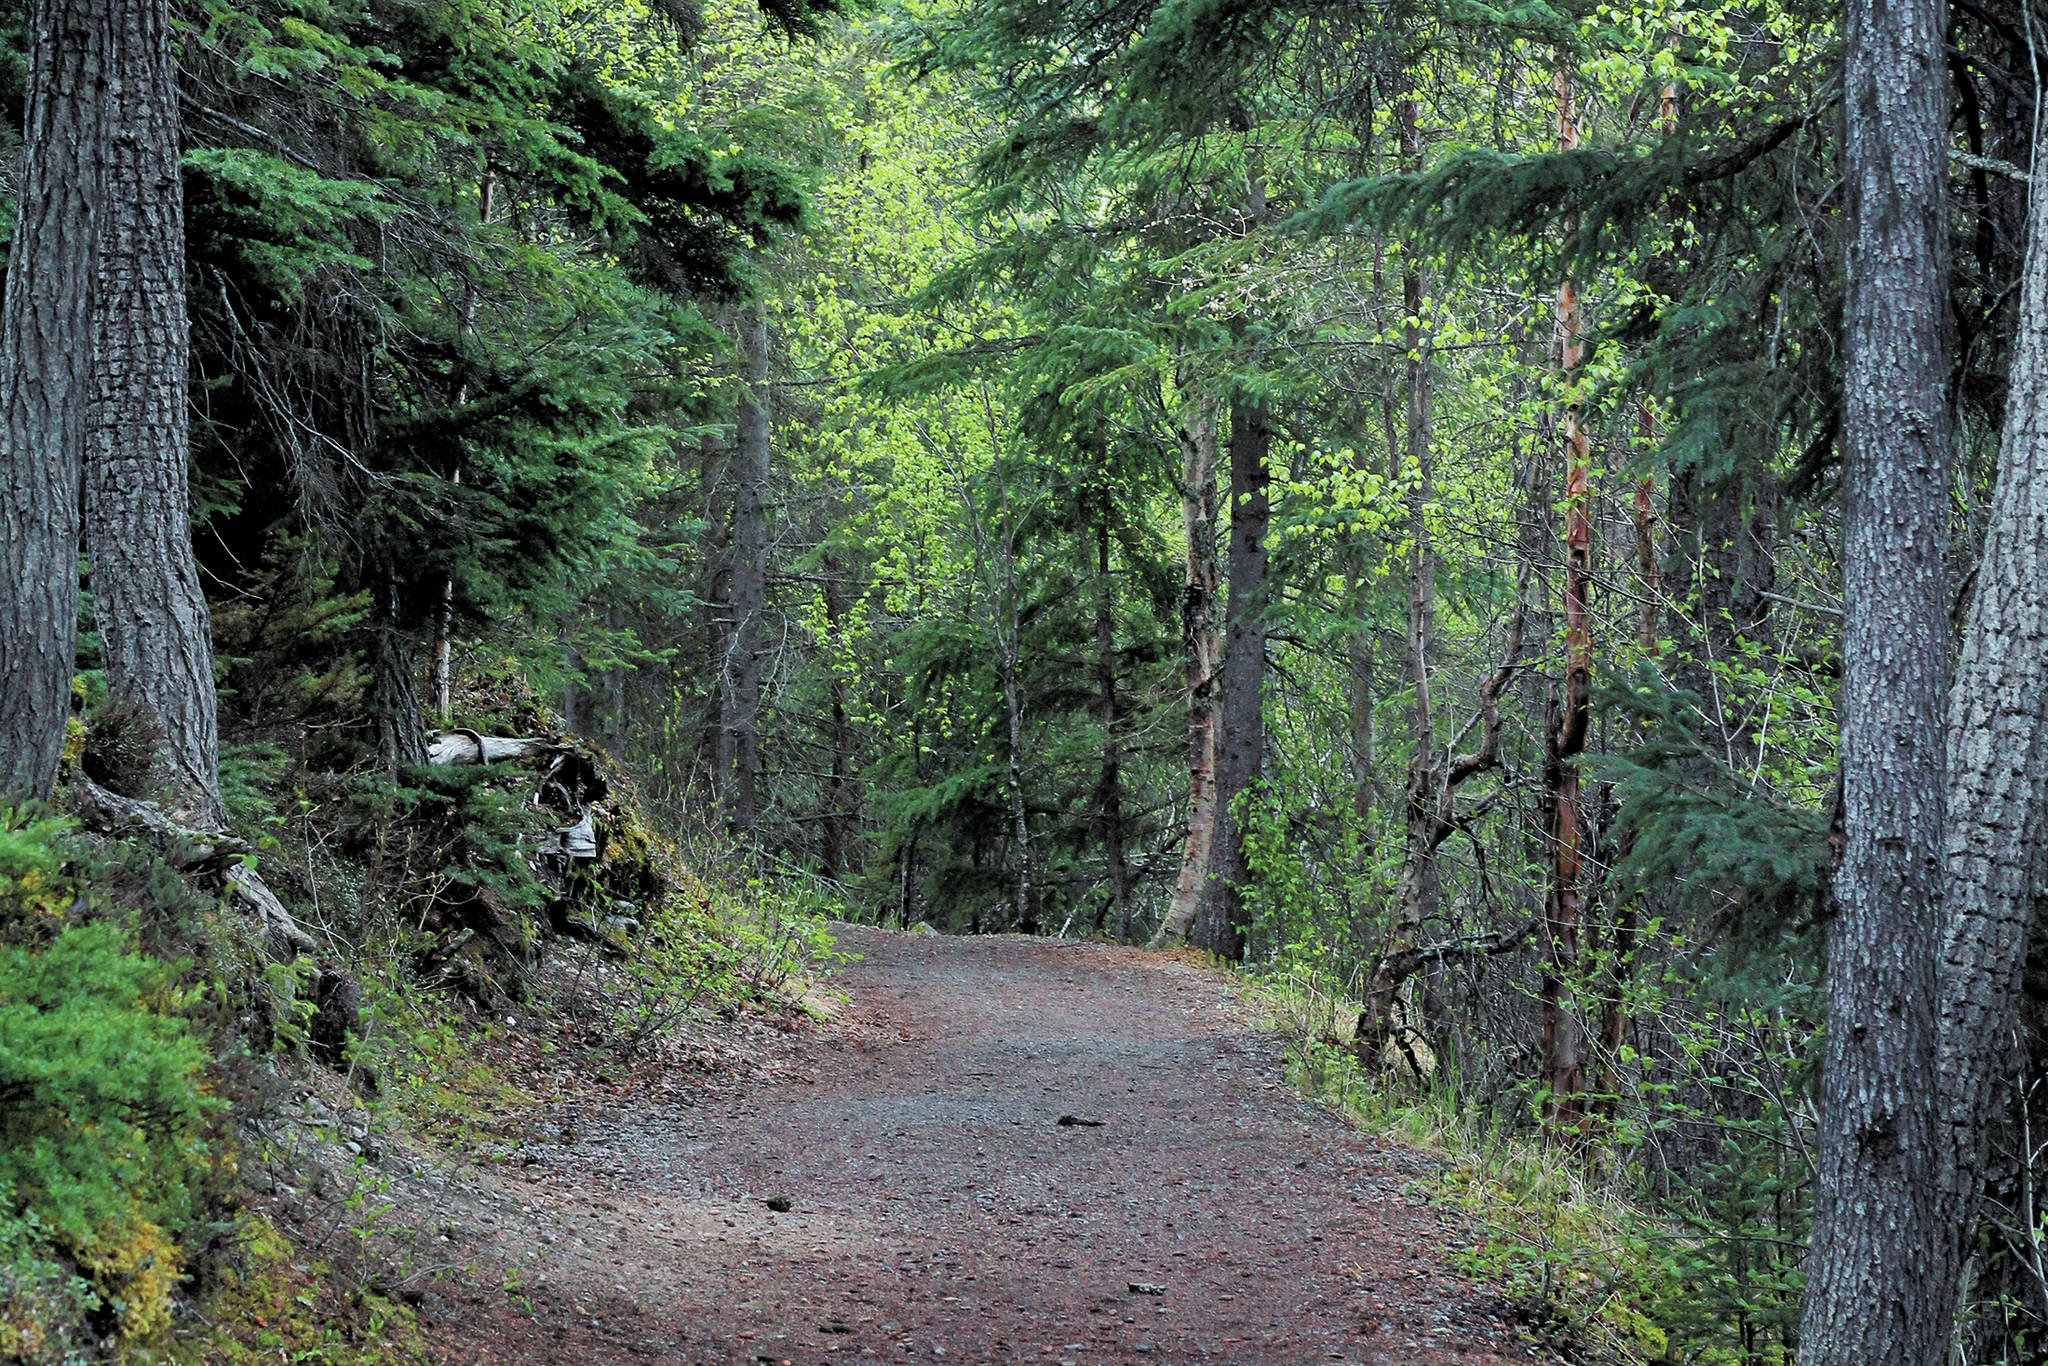 Out of the Office: Trails that wind, hearts that find